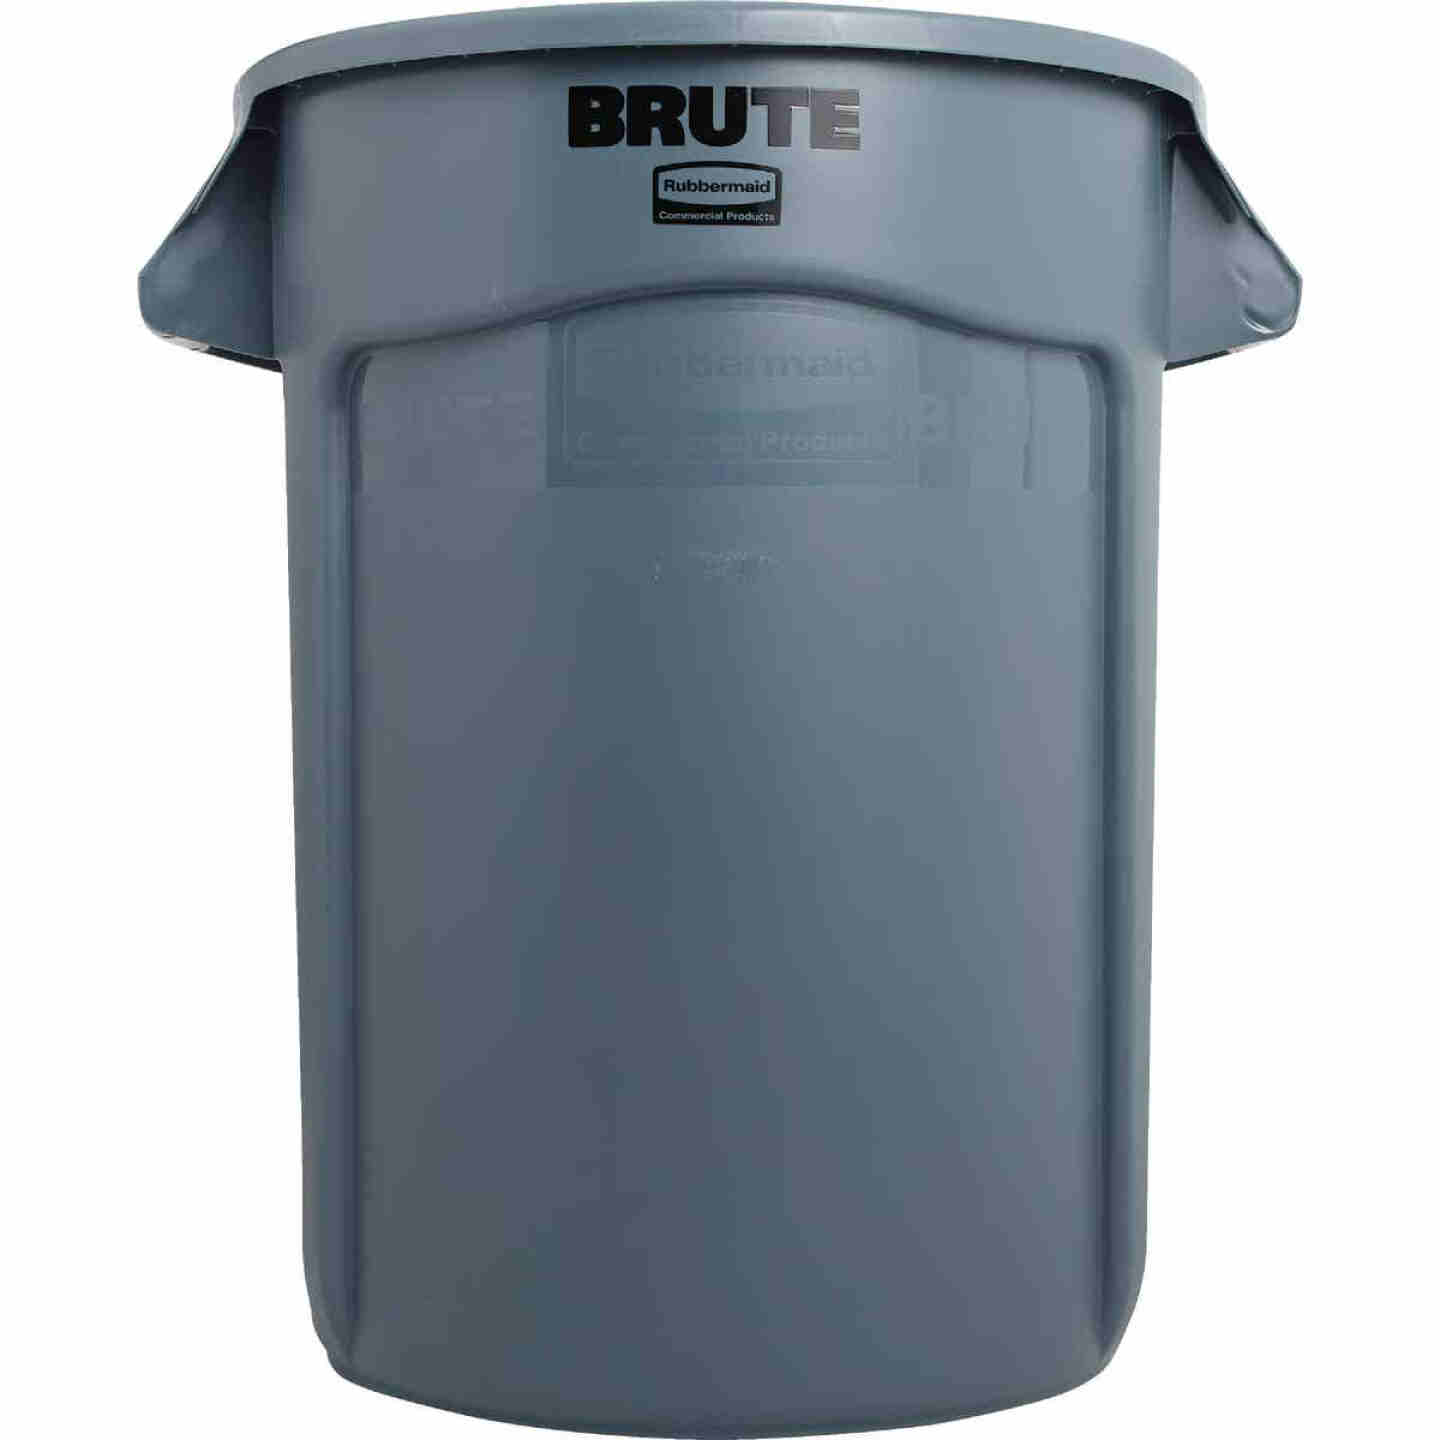 Rubbermaid Commercial Brute 32 Gal. Plastic Commercial Trash Can Image 2